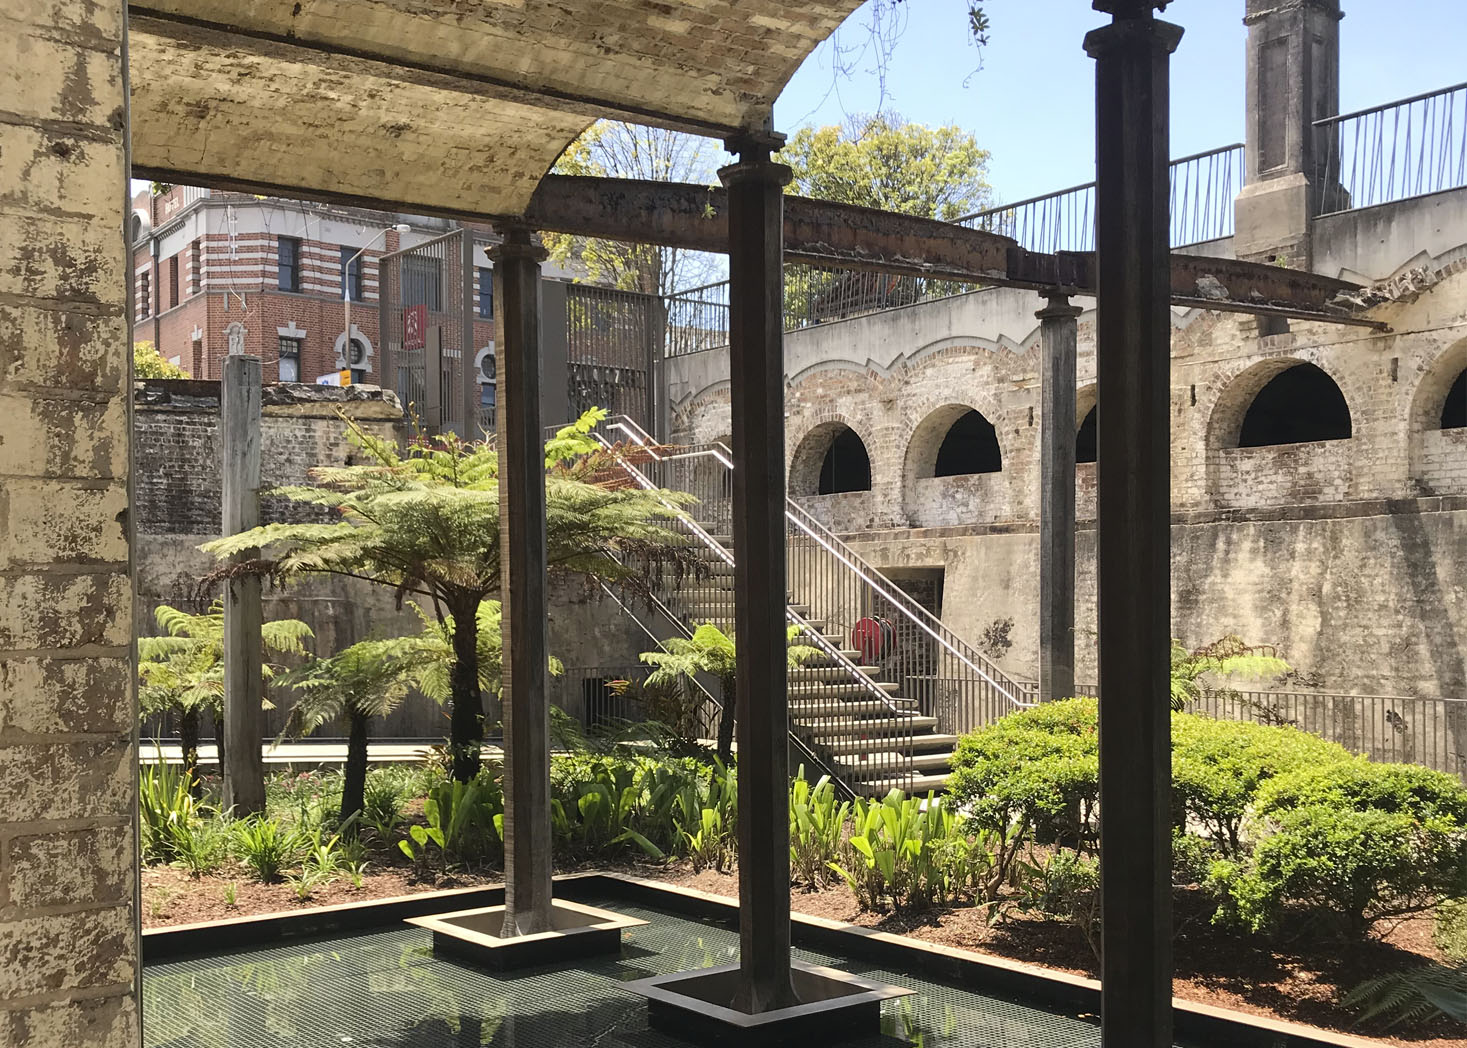 The Paddington Reservoir Gardens